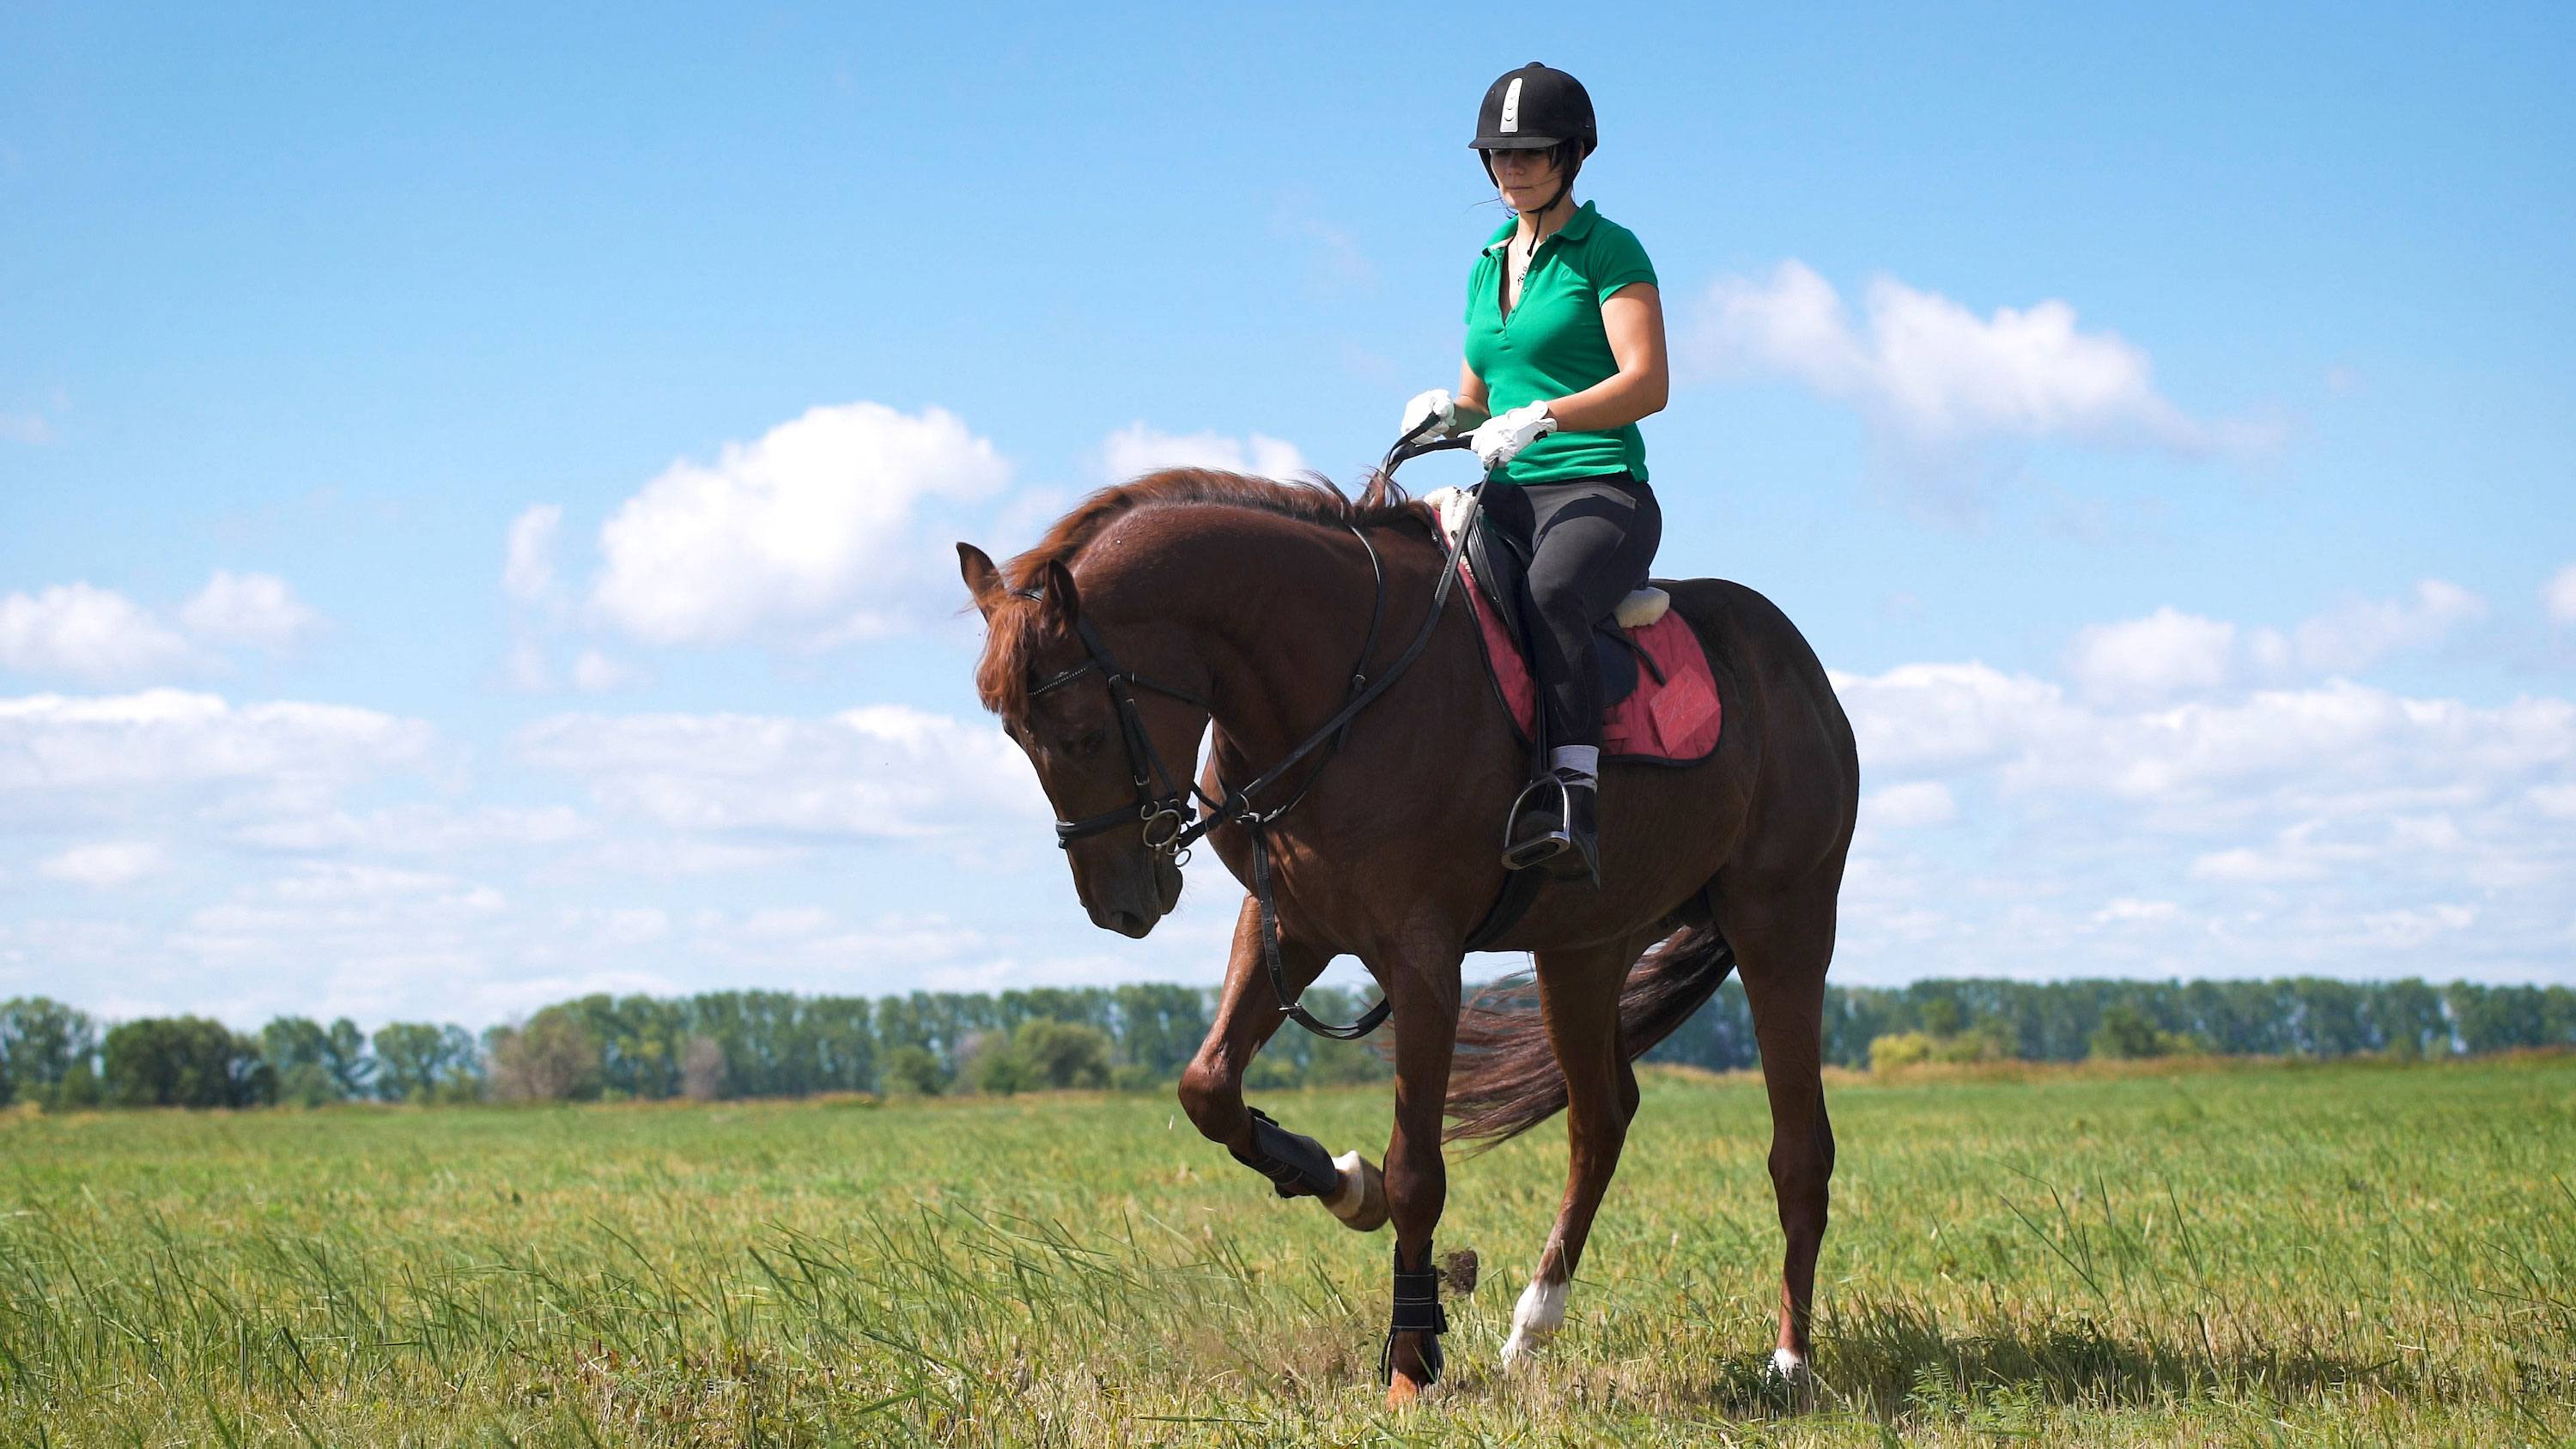 Woman on Horse in Field - Equitation Science